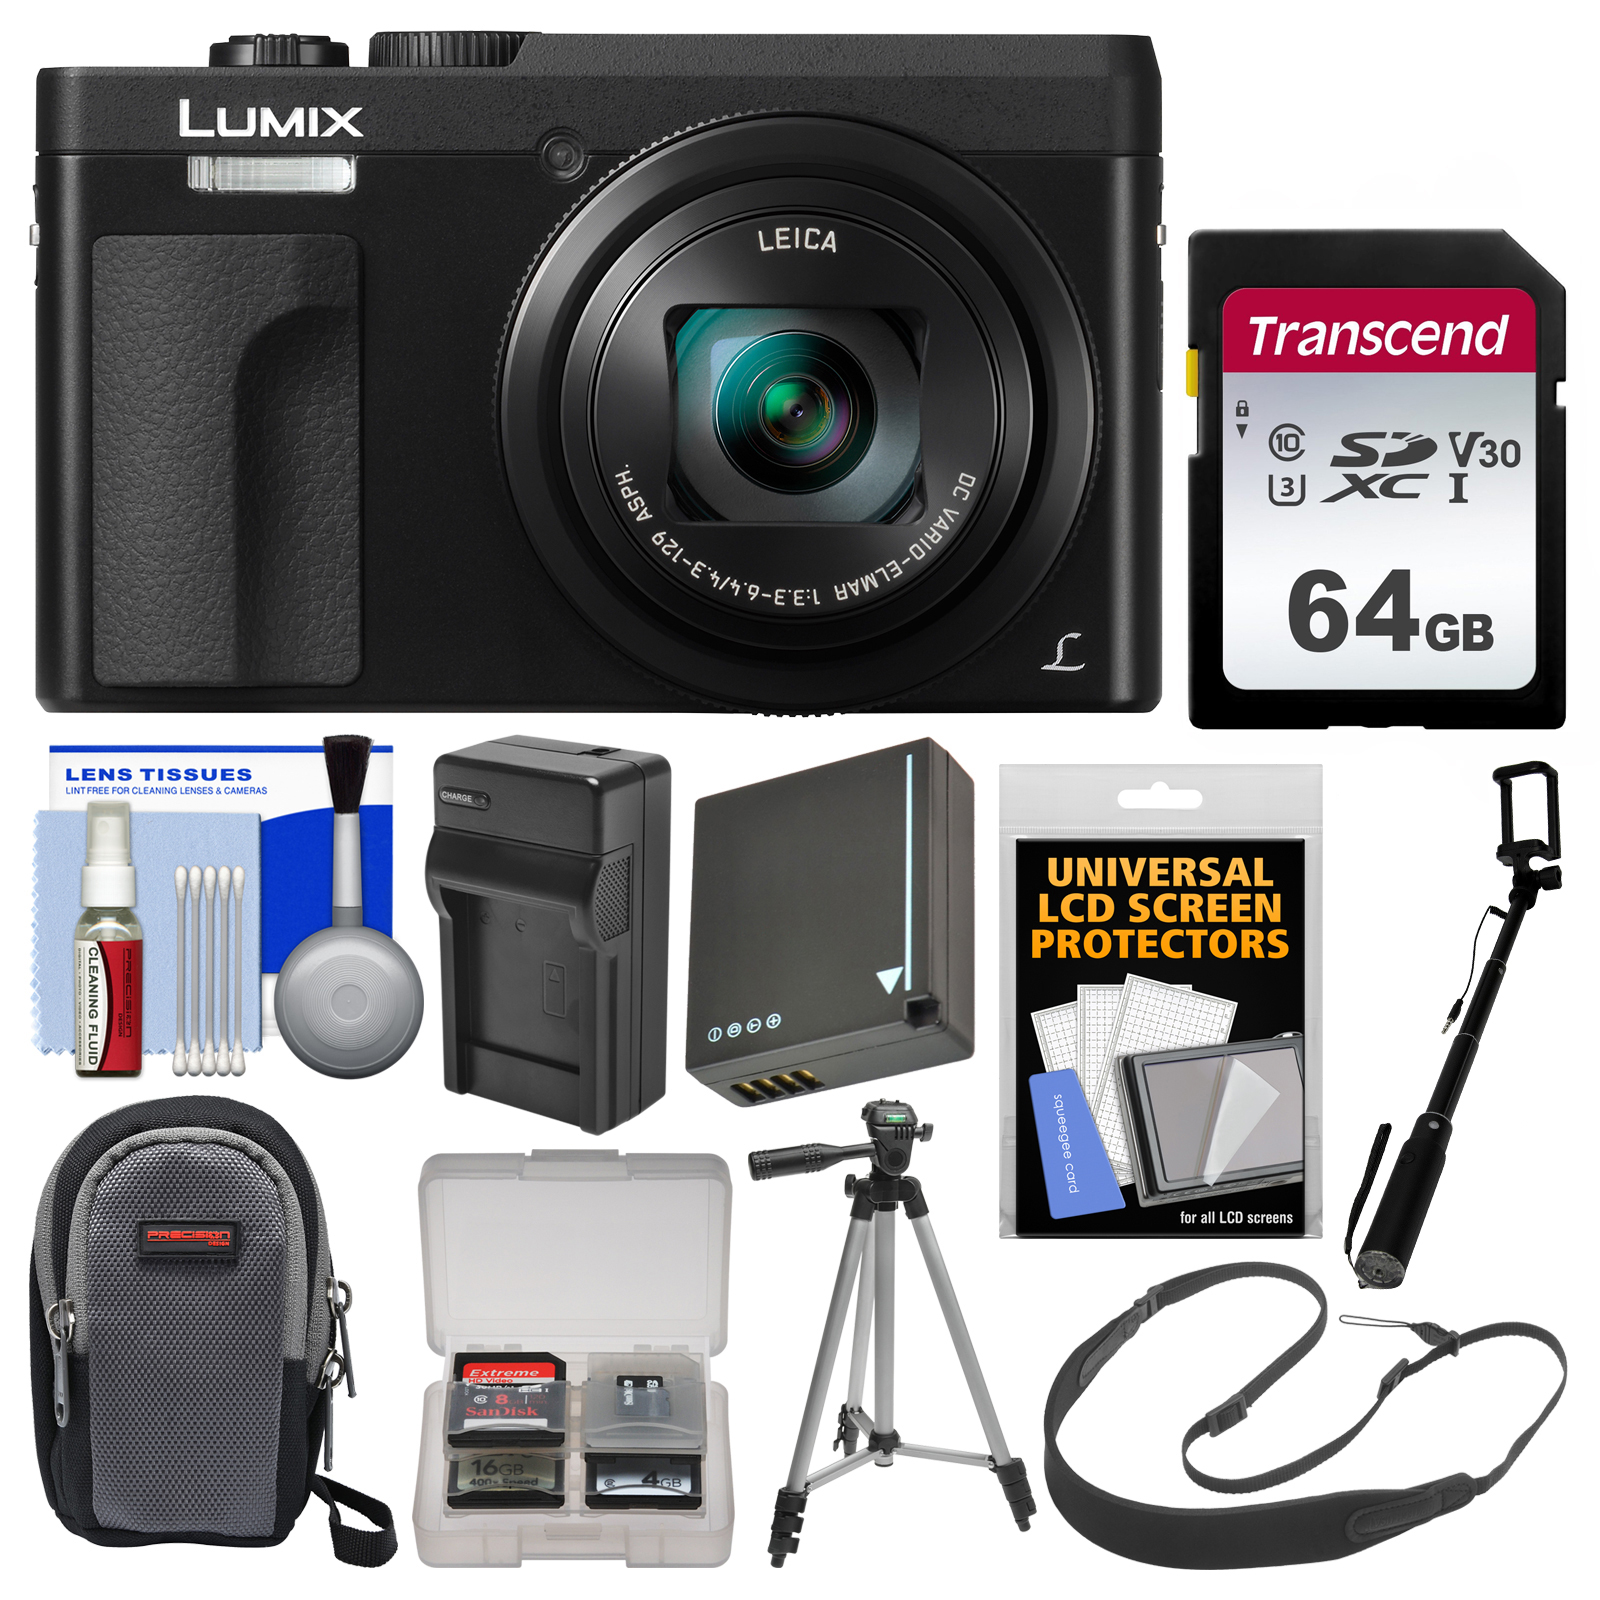 Panasonic Lumix DC-ZS70 4K Wi-Fi Digital Camera (Silver) with 64GB Card + Case + Battery + Charger + Monopod + Tripod + Strap + Cleaning Kit